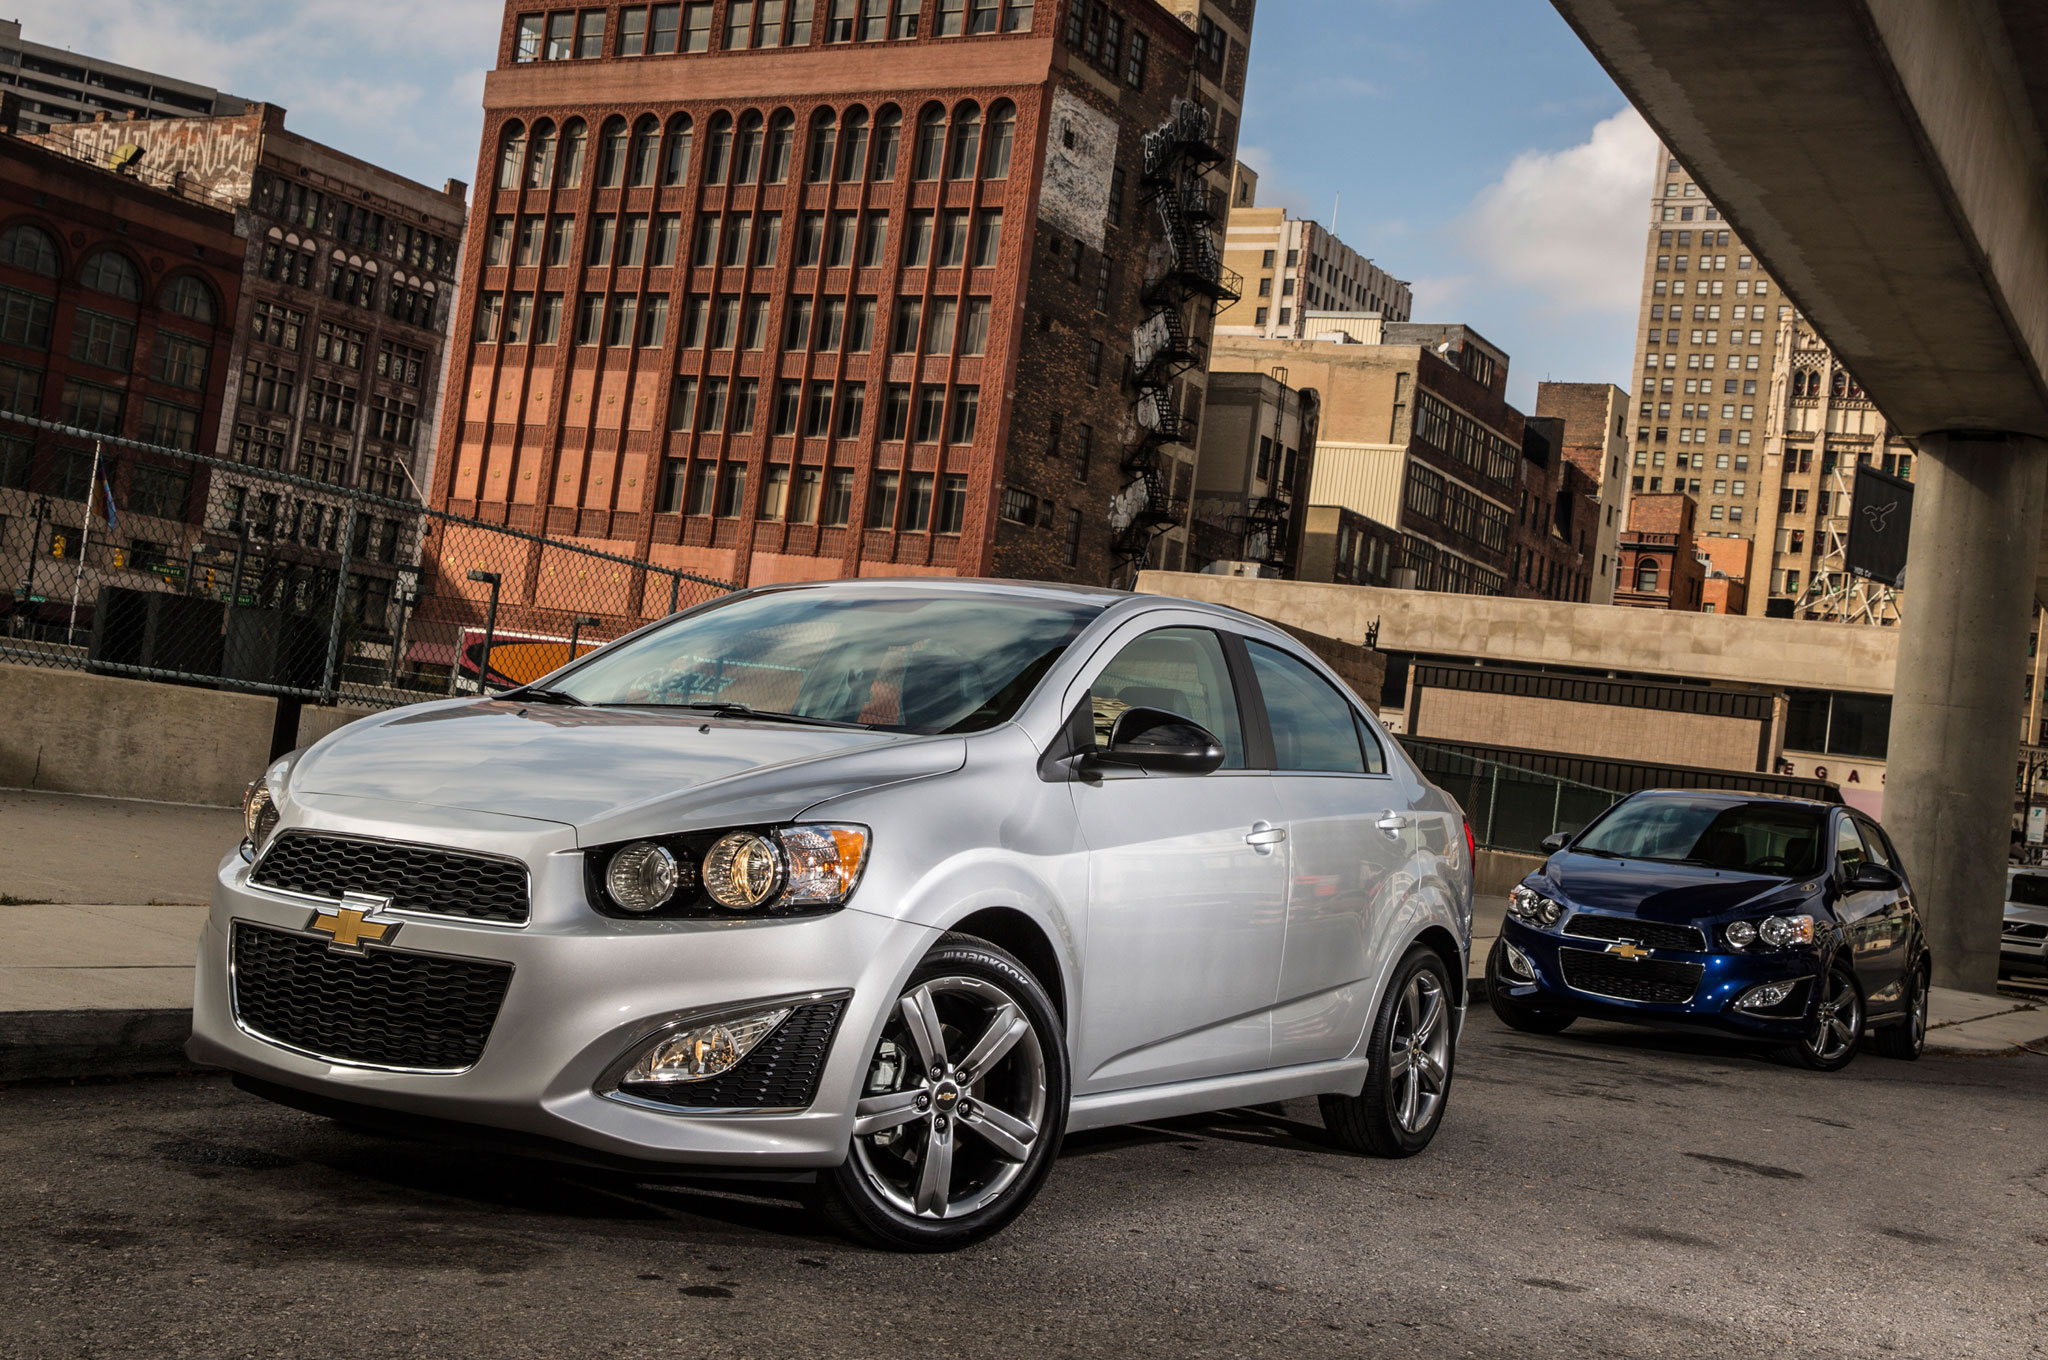 2015 chevrolet sonic buick lacrosse cadillac xts updated. Black Bedroom Furniture Sets. Home Design Ideas